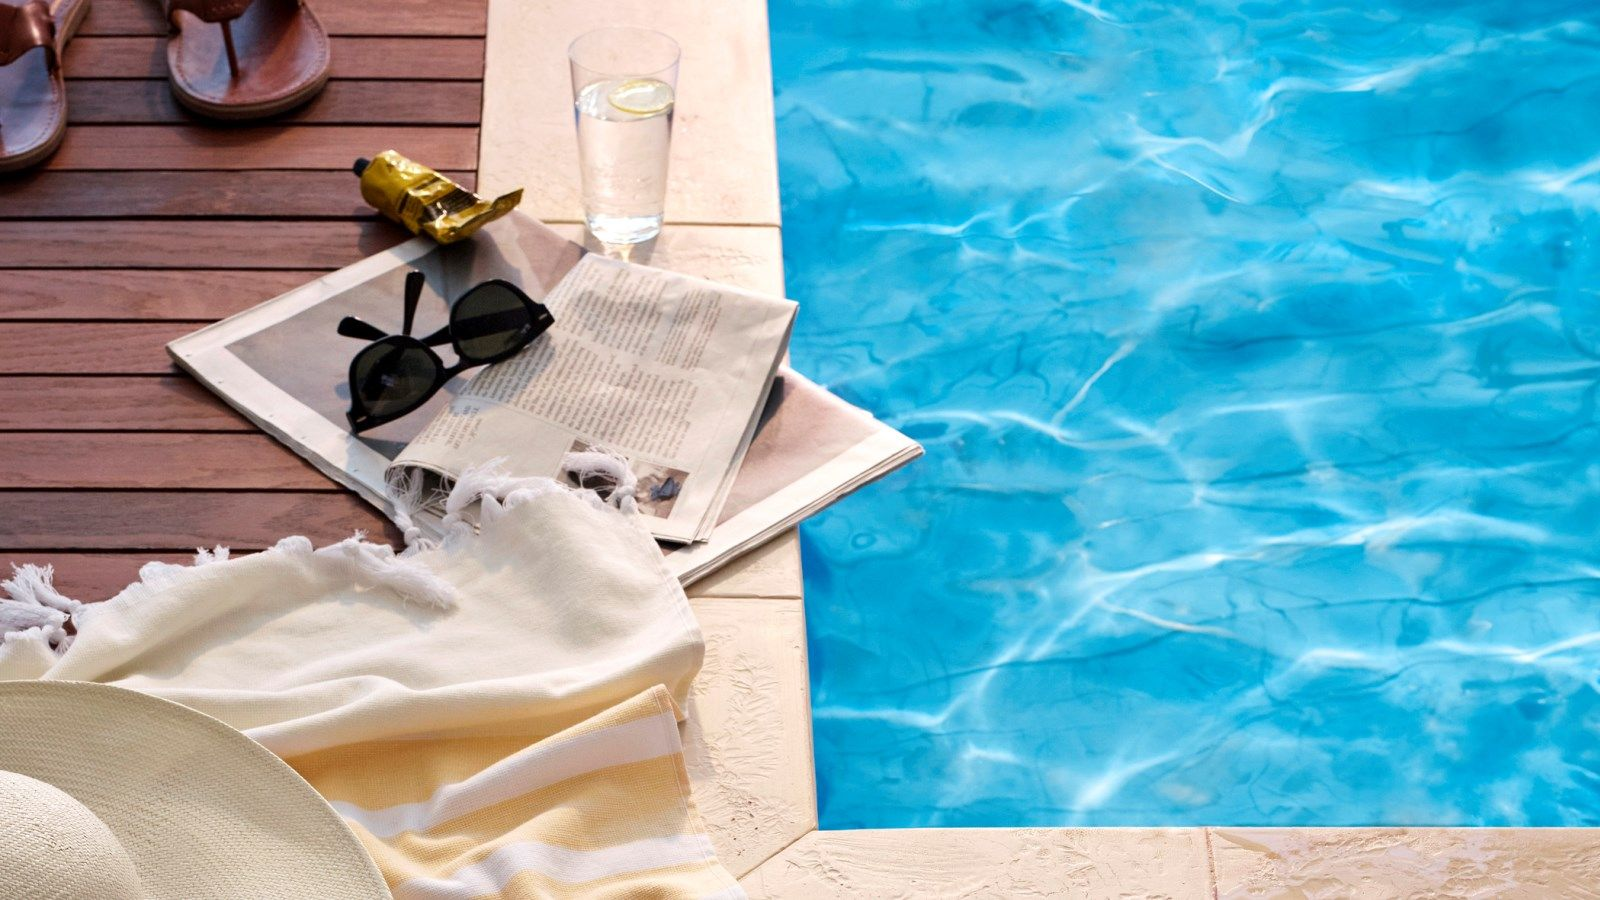 Purchase a day pass package and enjoy use of our refreshing Vancouver hotel pool.